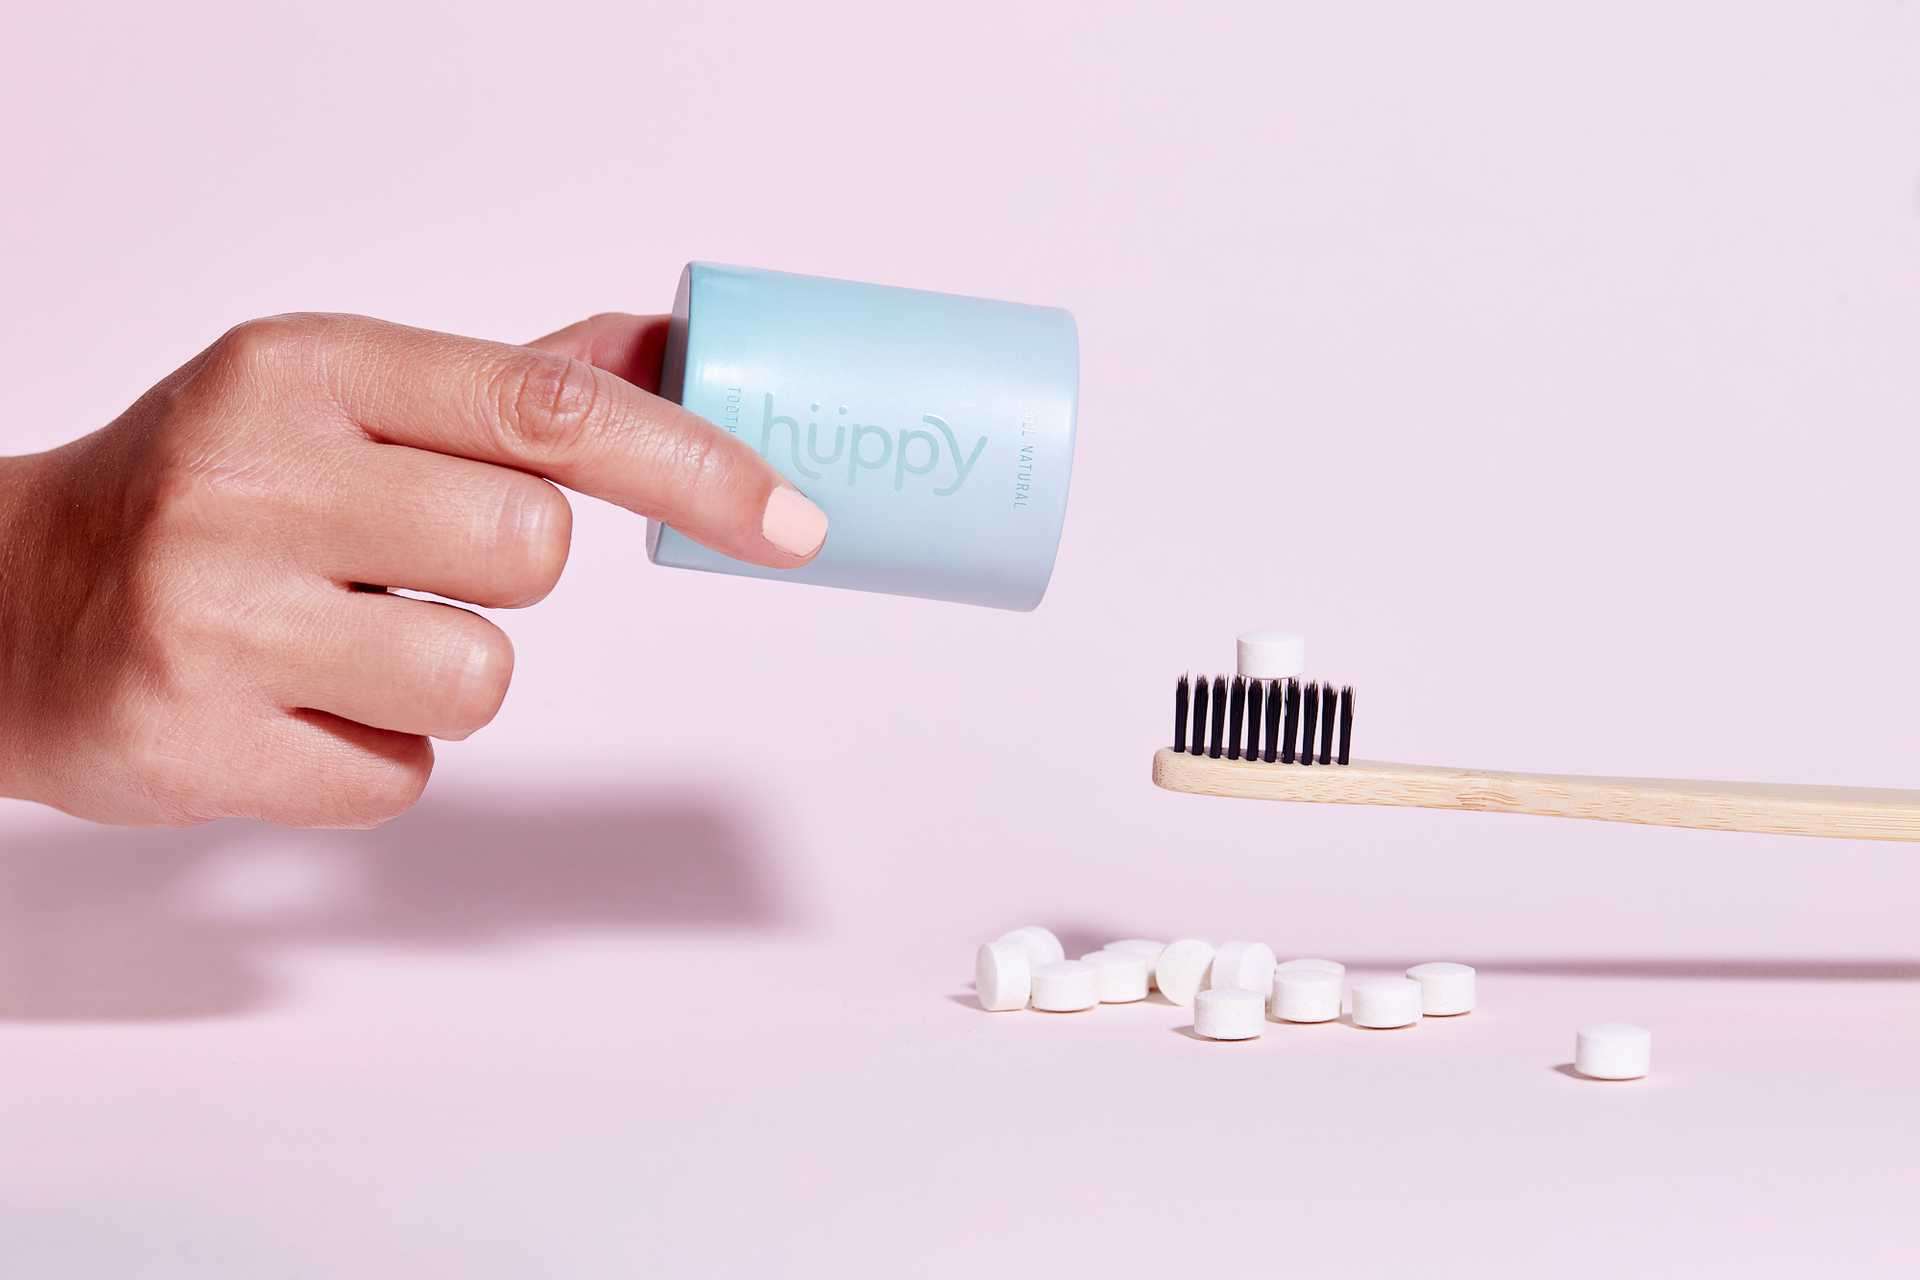 Huppy Review:, Are Huppy's Sustainable Toothpaste Tablets Better Than The Competition? cover image